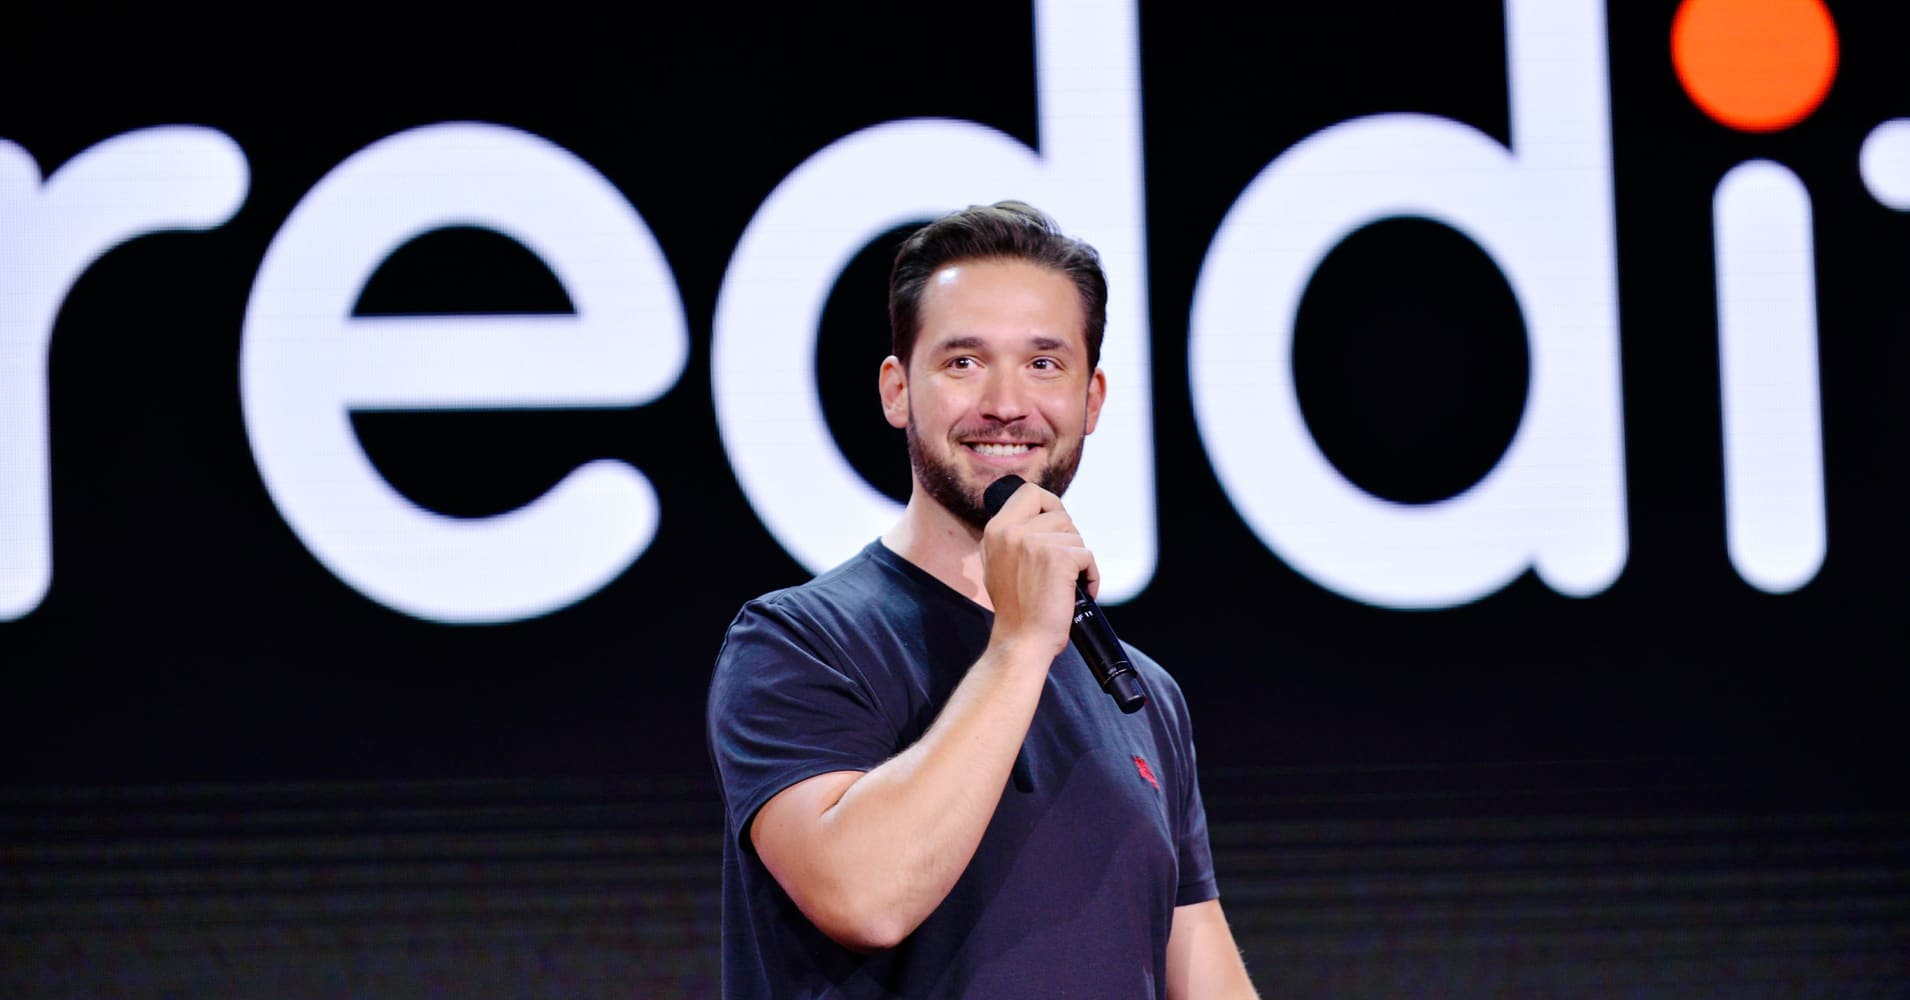 Co-Founder and Executive Chair of Reddit, Alexis Ohanian